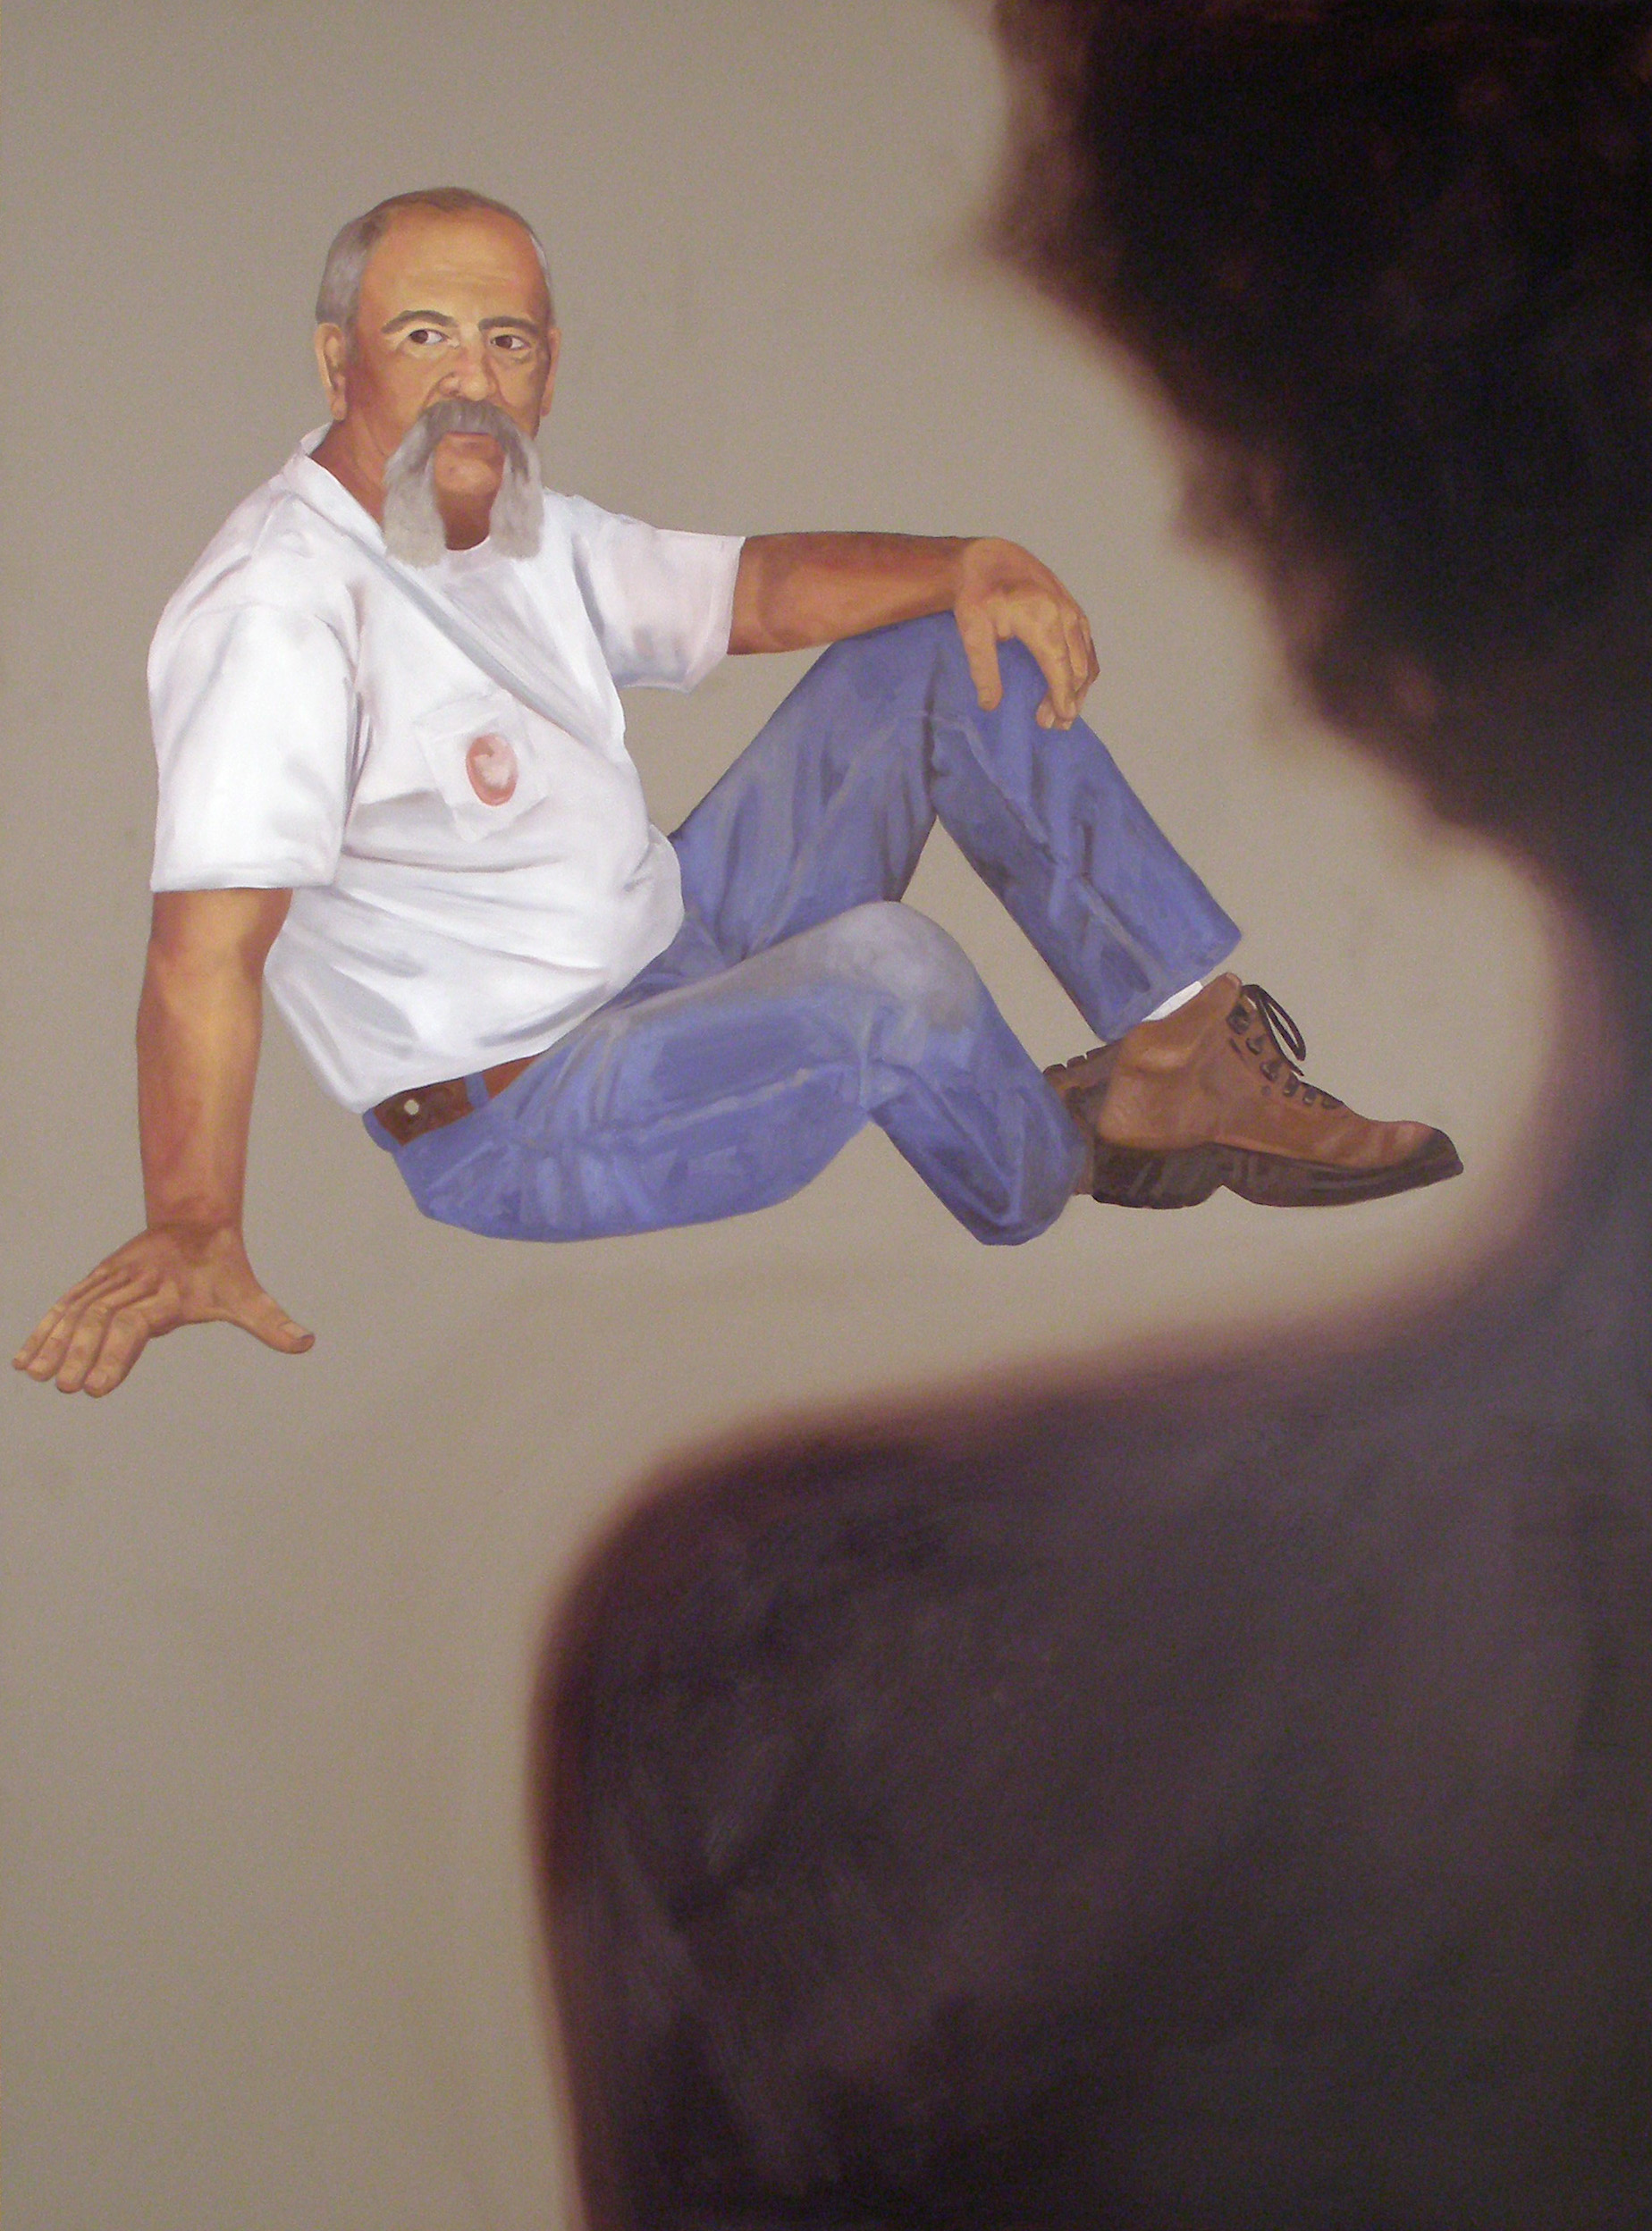 """Alone Together: September 16th, 8:32pm, 46""""x 34"""", oil on laminate, 2007"""